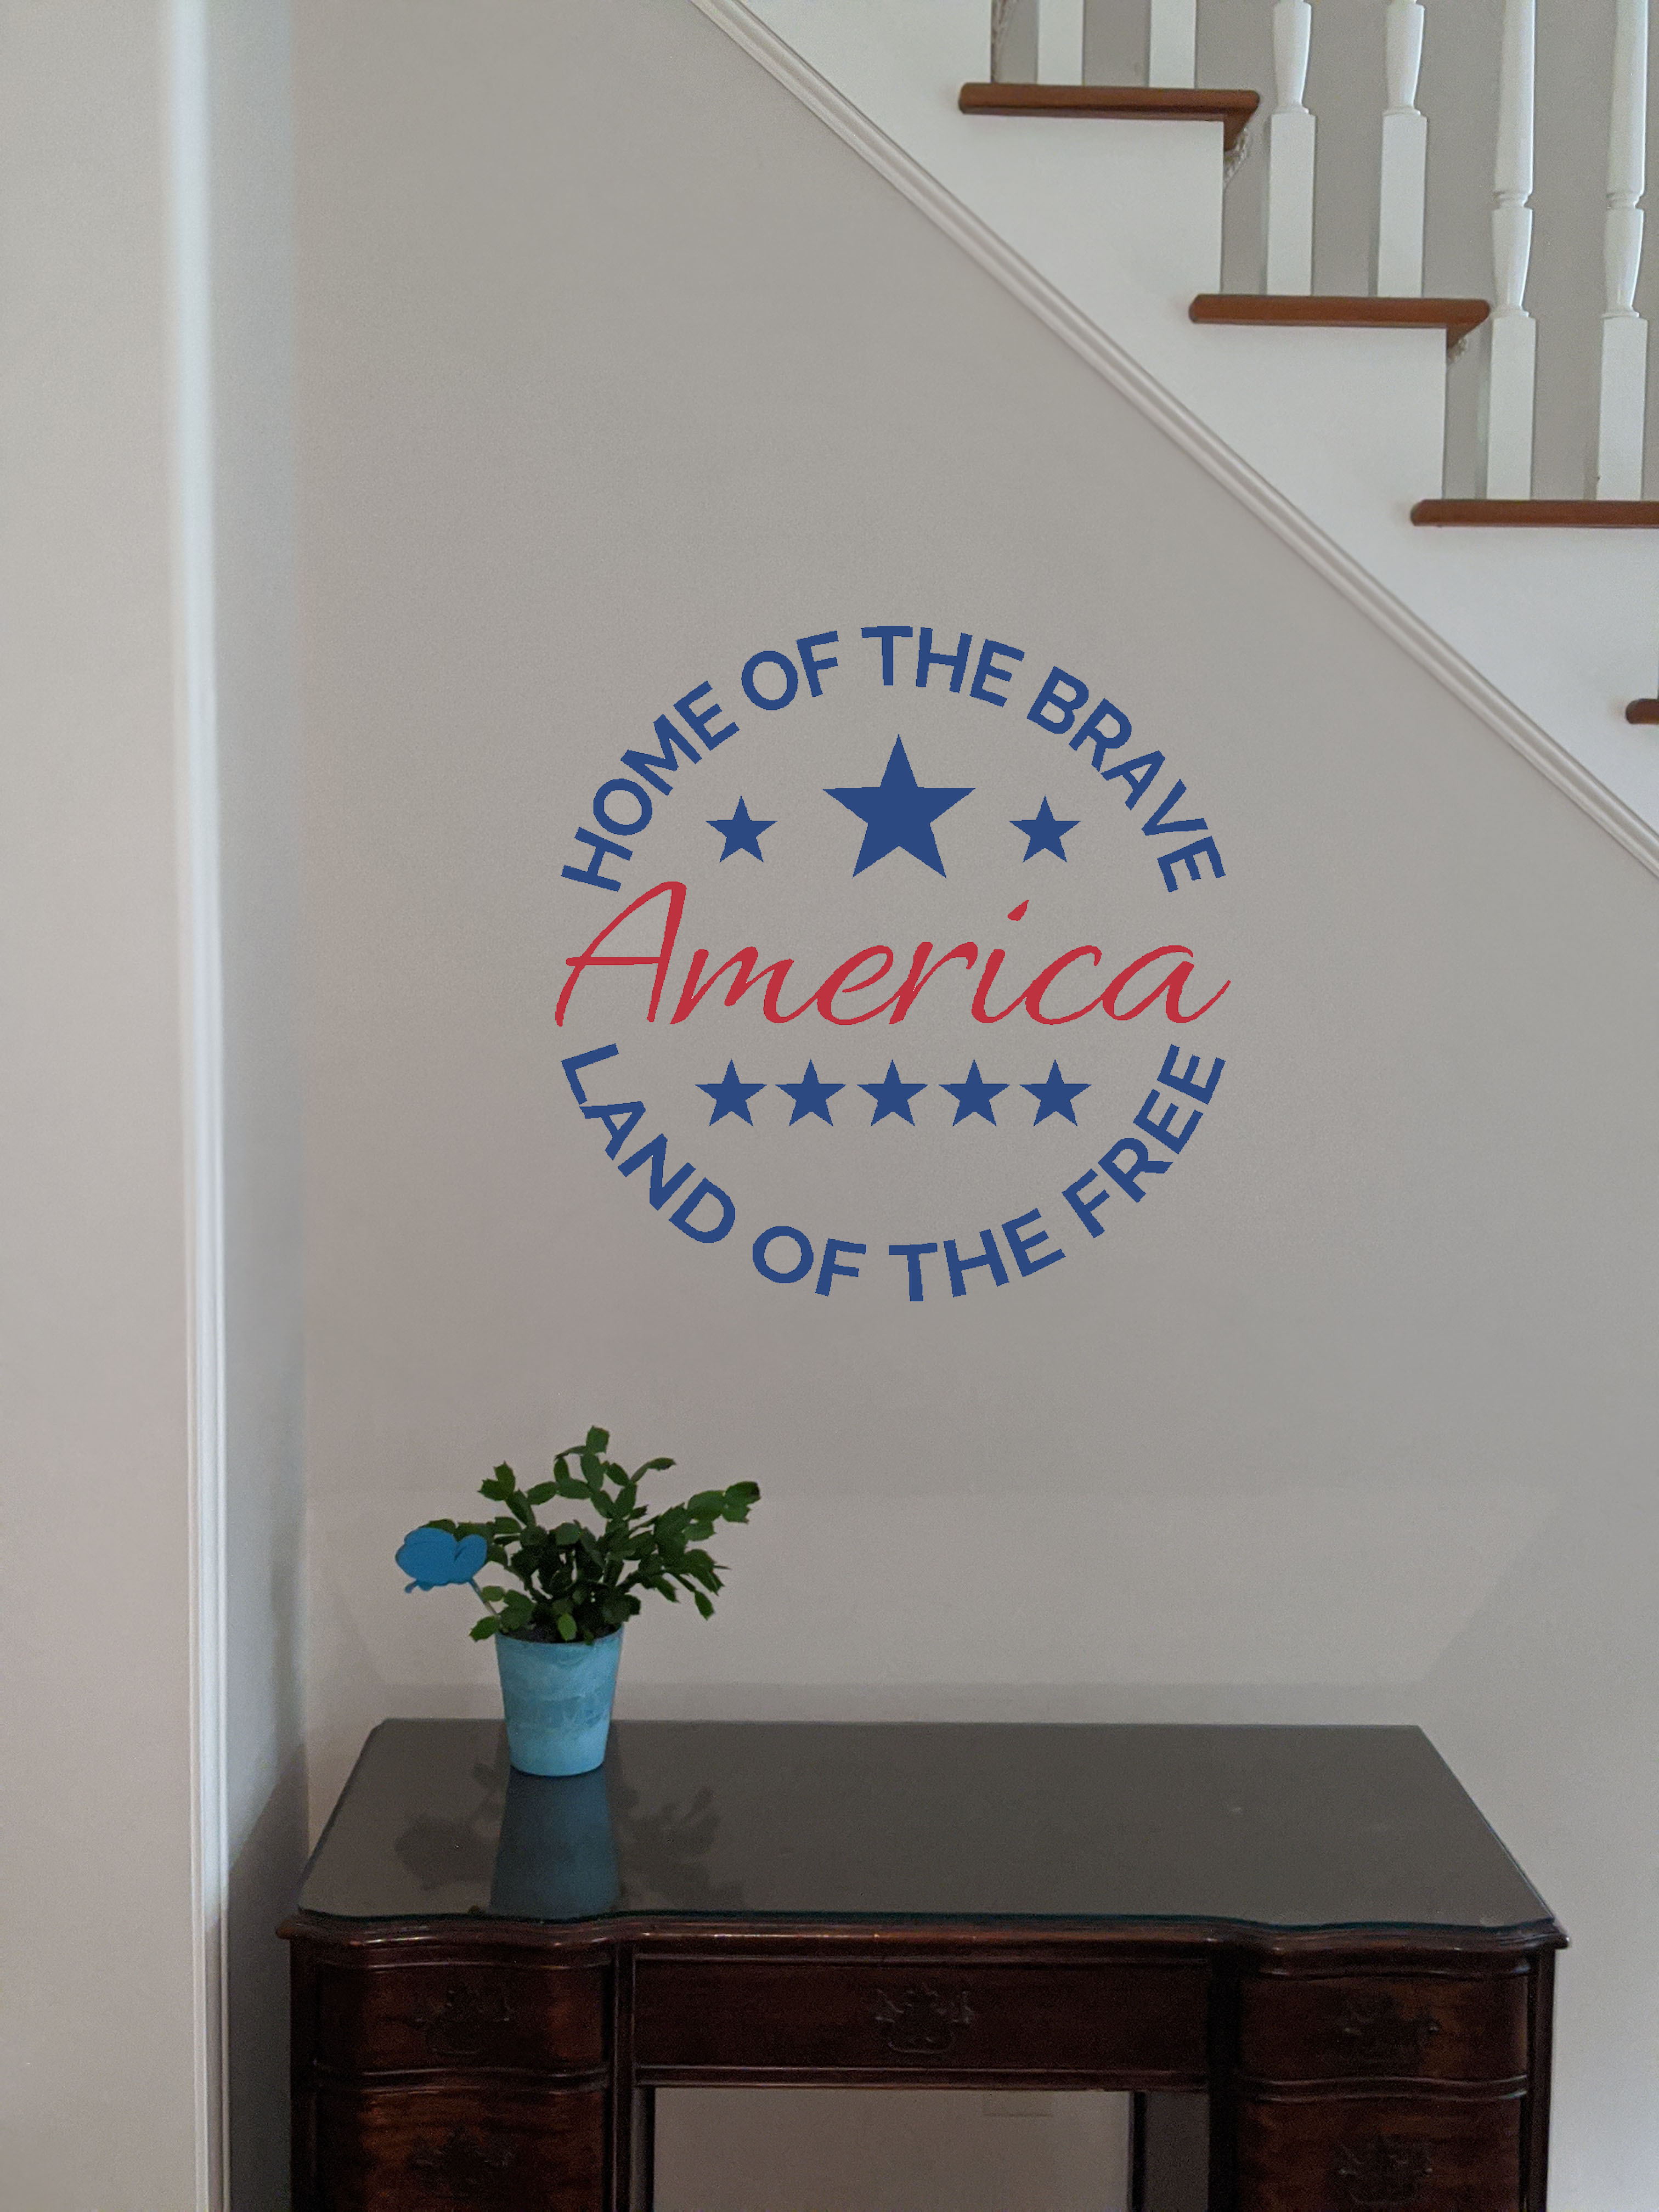 America Home of the Brave Land of the Free